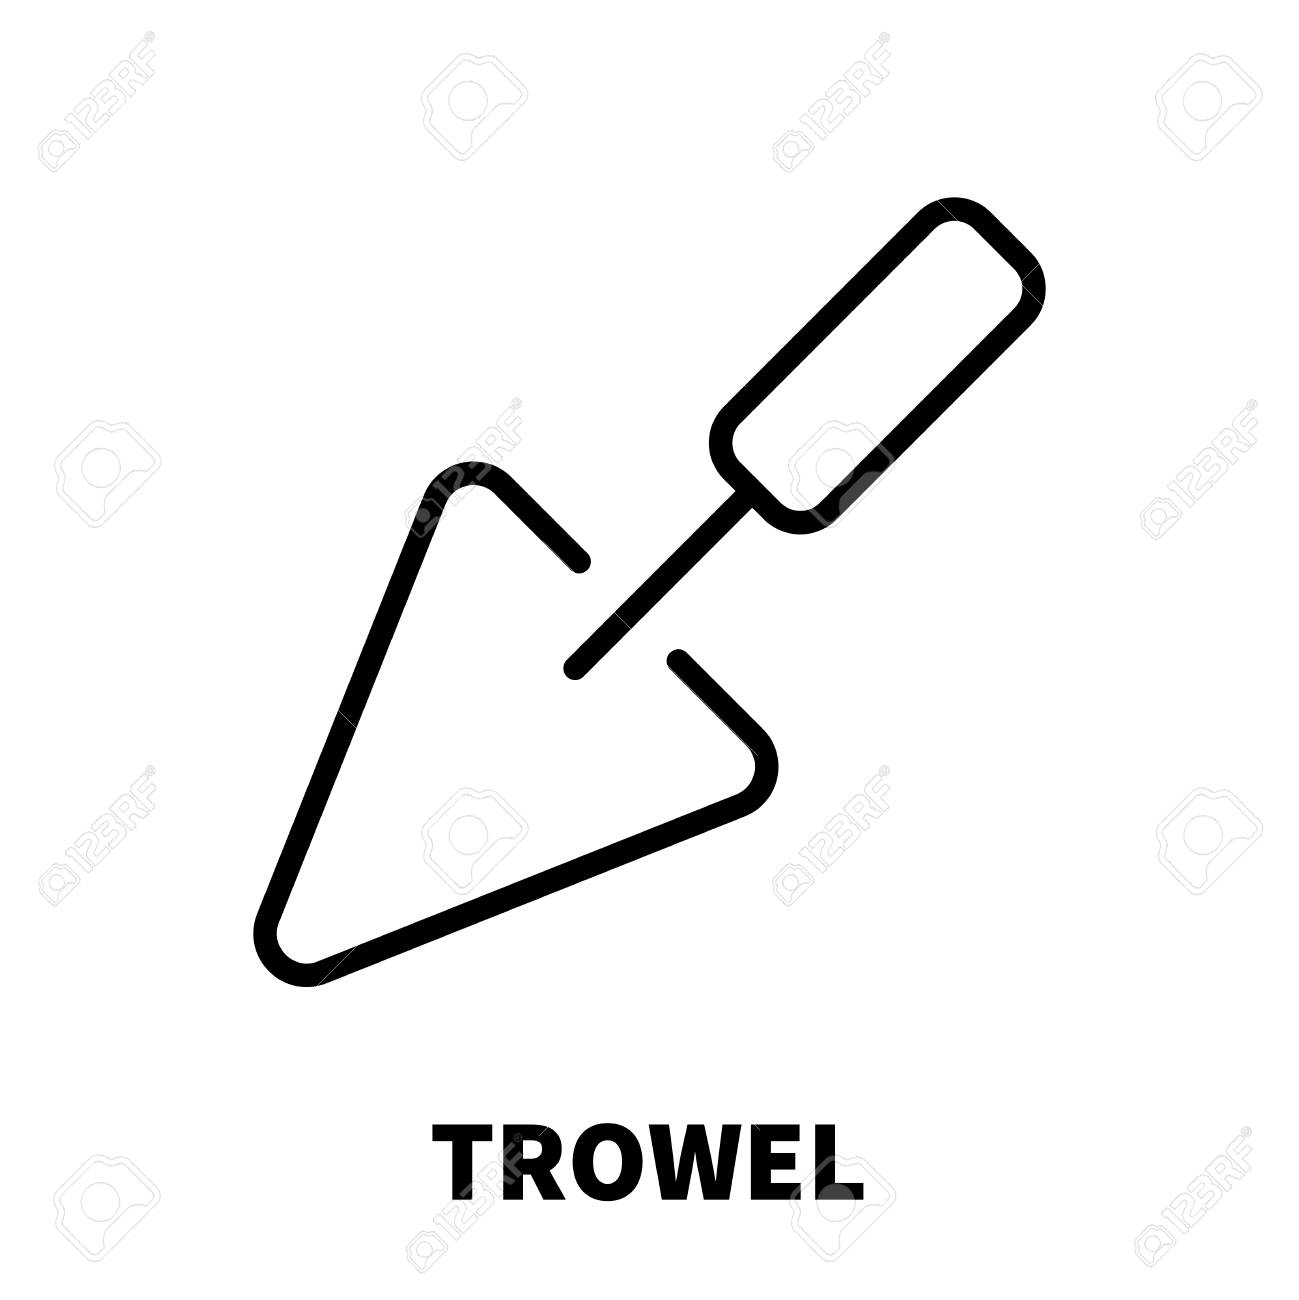 Trowel icon or logo in modern line style high quality black outline imagens trowel icon or logo in modern line style high quality black outline pictogram for web site design and mobile apps vector illustration on a white ccuart Images